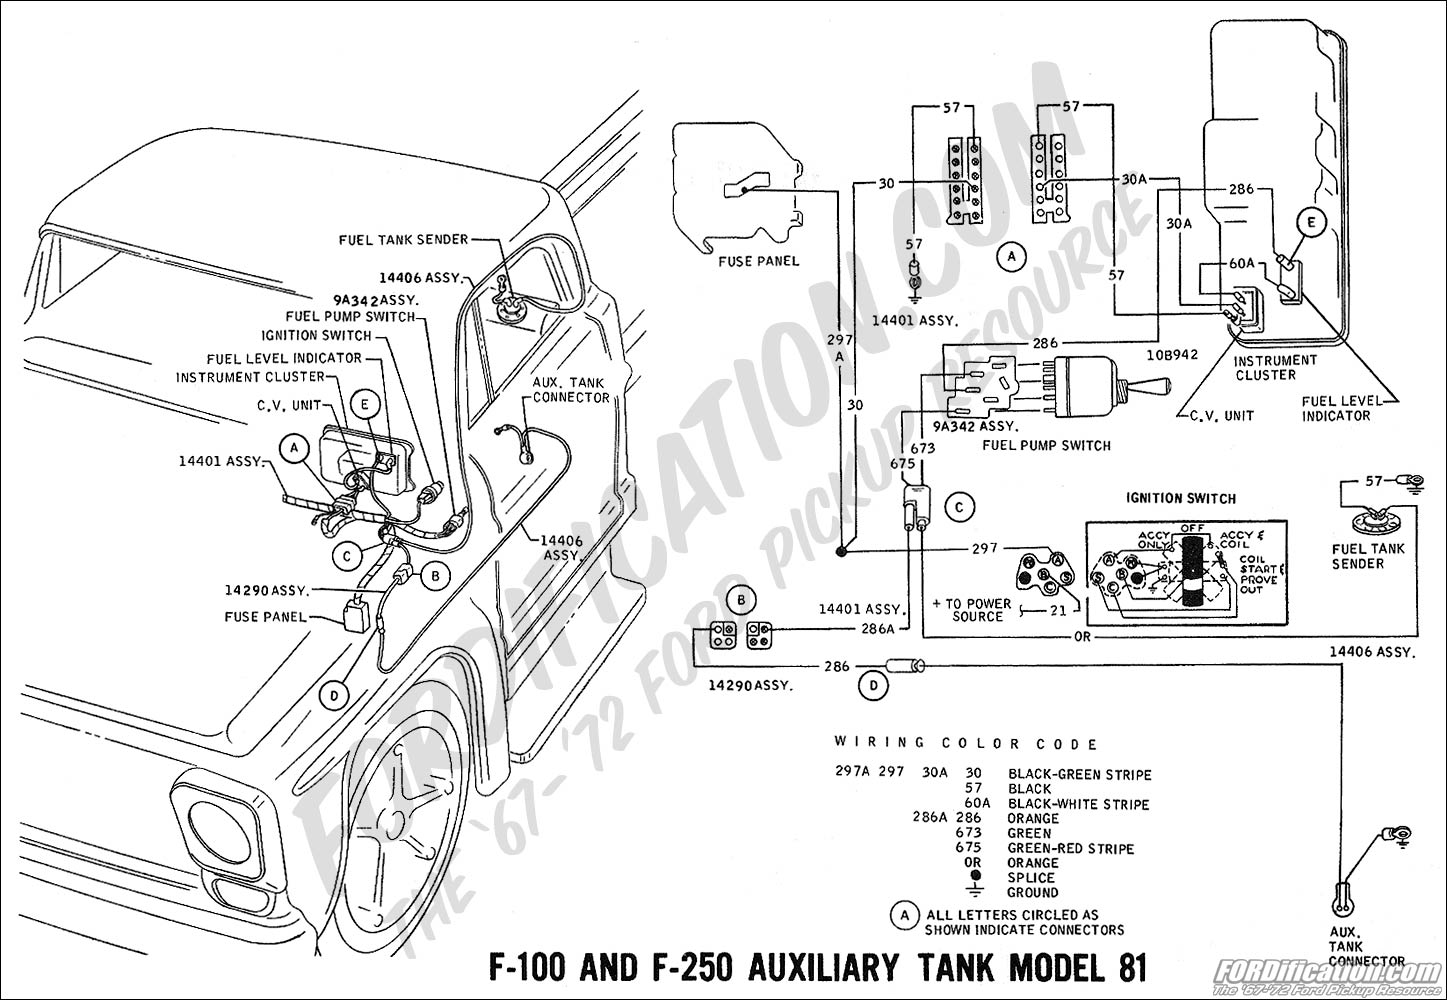 ford truck technical drawings and schematics section h wiring rh  fordification com 1996 Ford F-250 Fuse Box Diagram Ford F-250 Fuse Box  Diagram